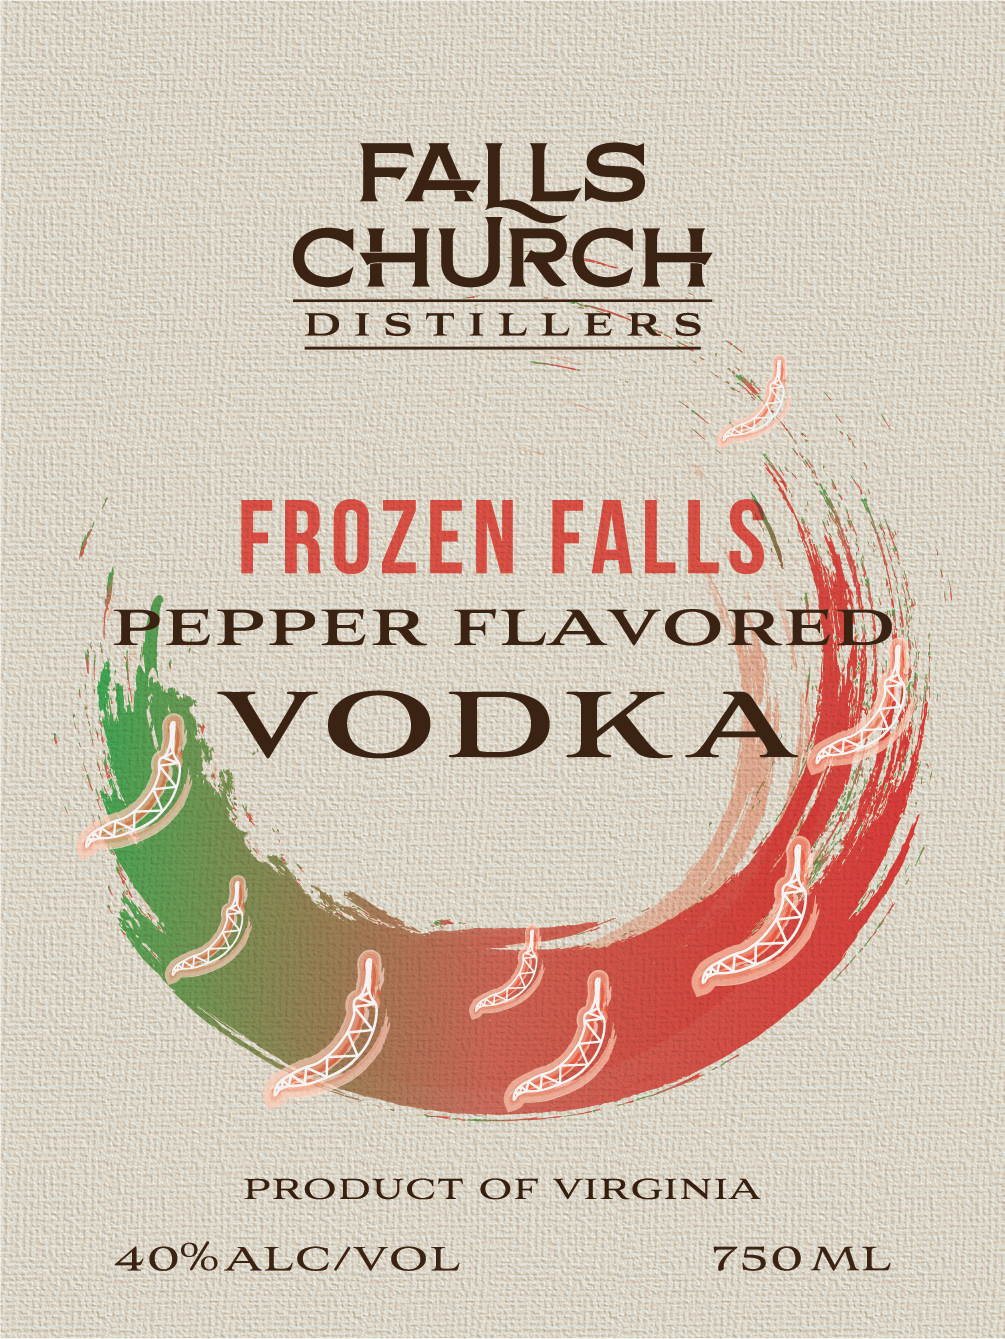 Frozen Falls Pepper Flavored Vodka